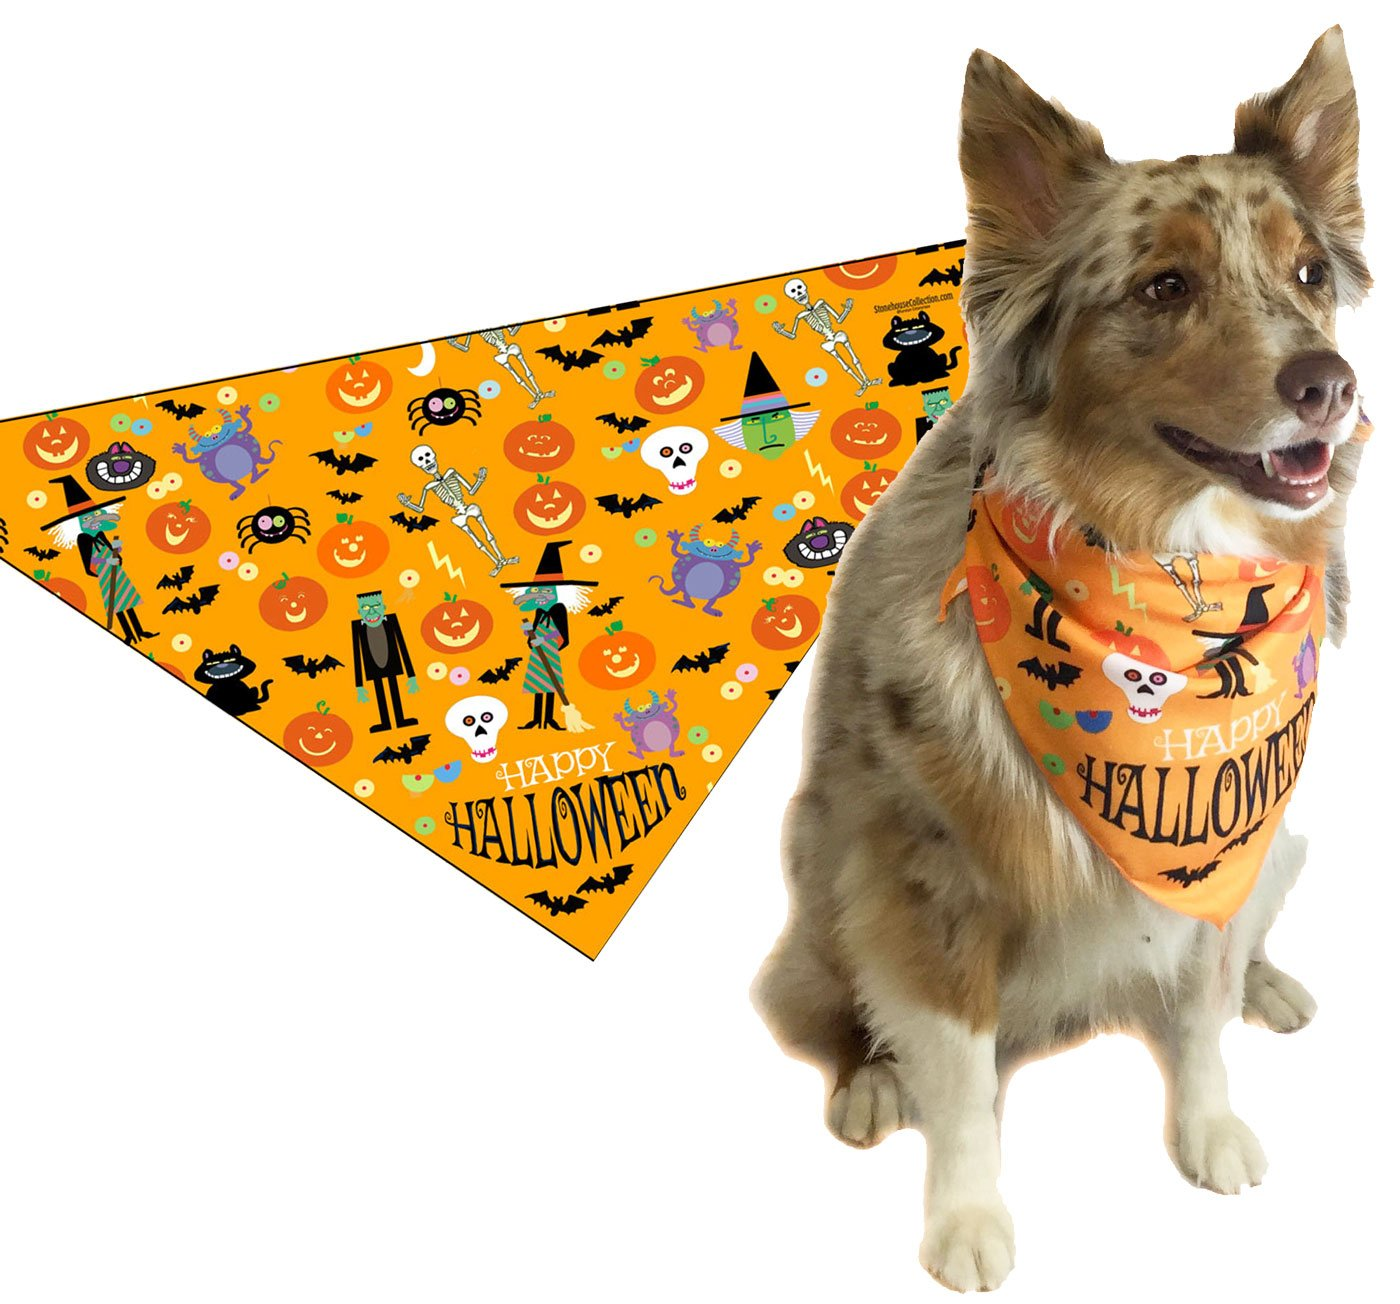 Stonehouse Collection Halloween Dog Bandana - Medium to Large Dogs